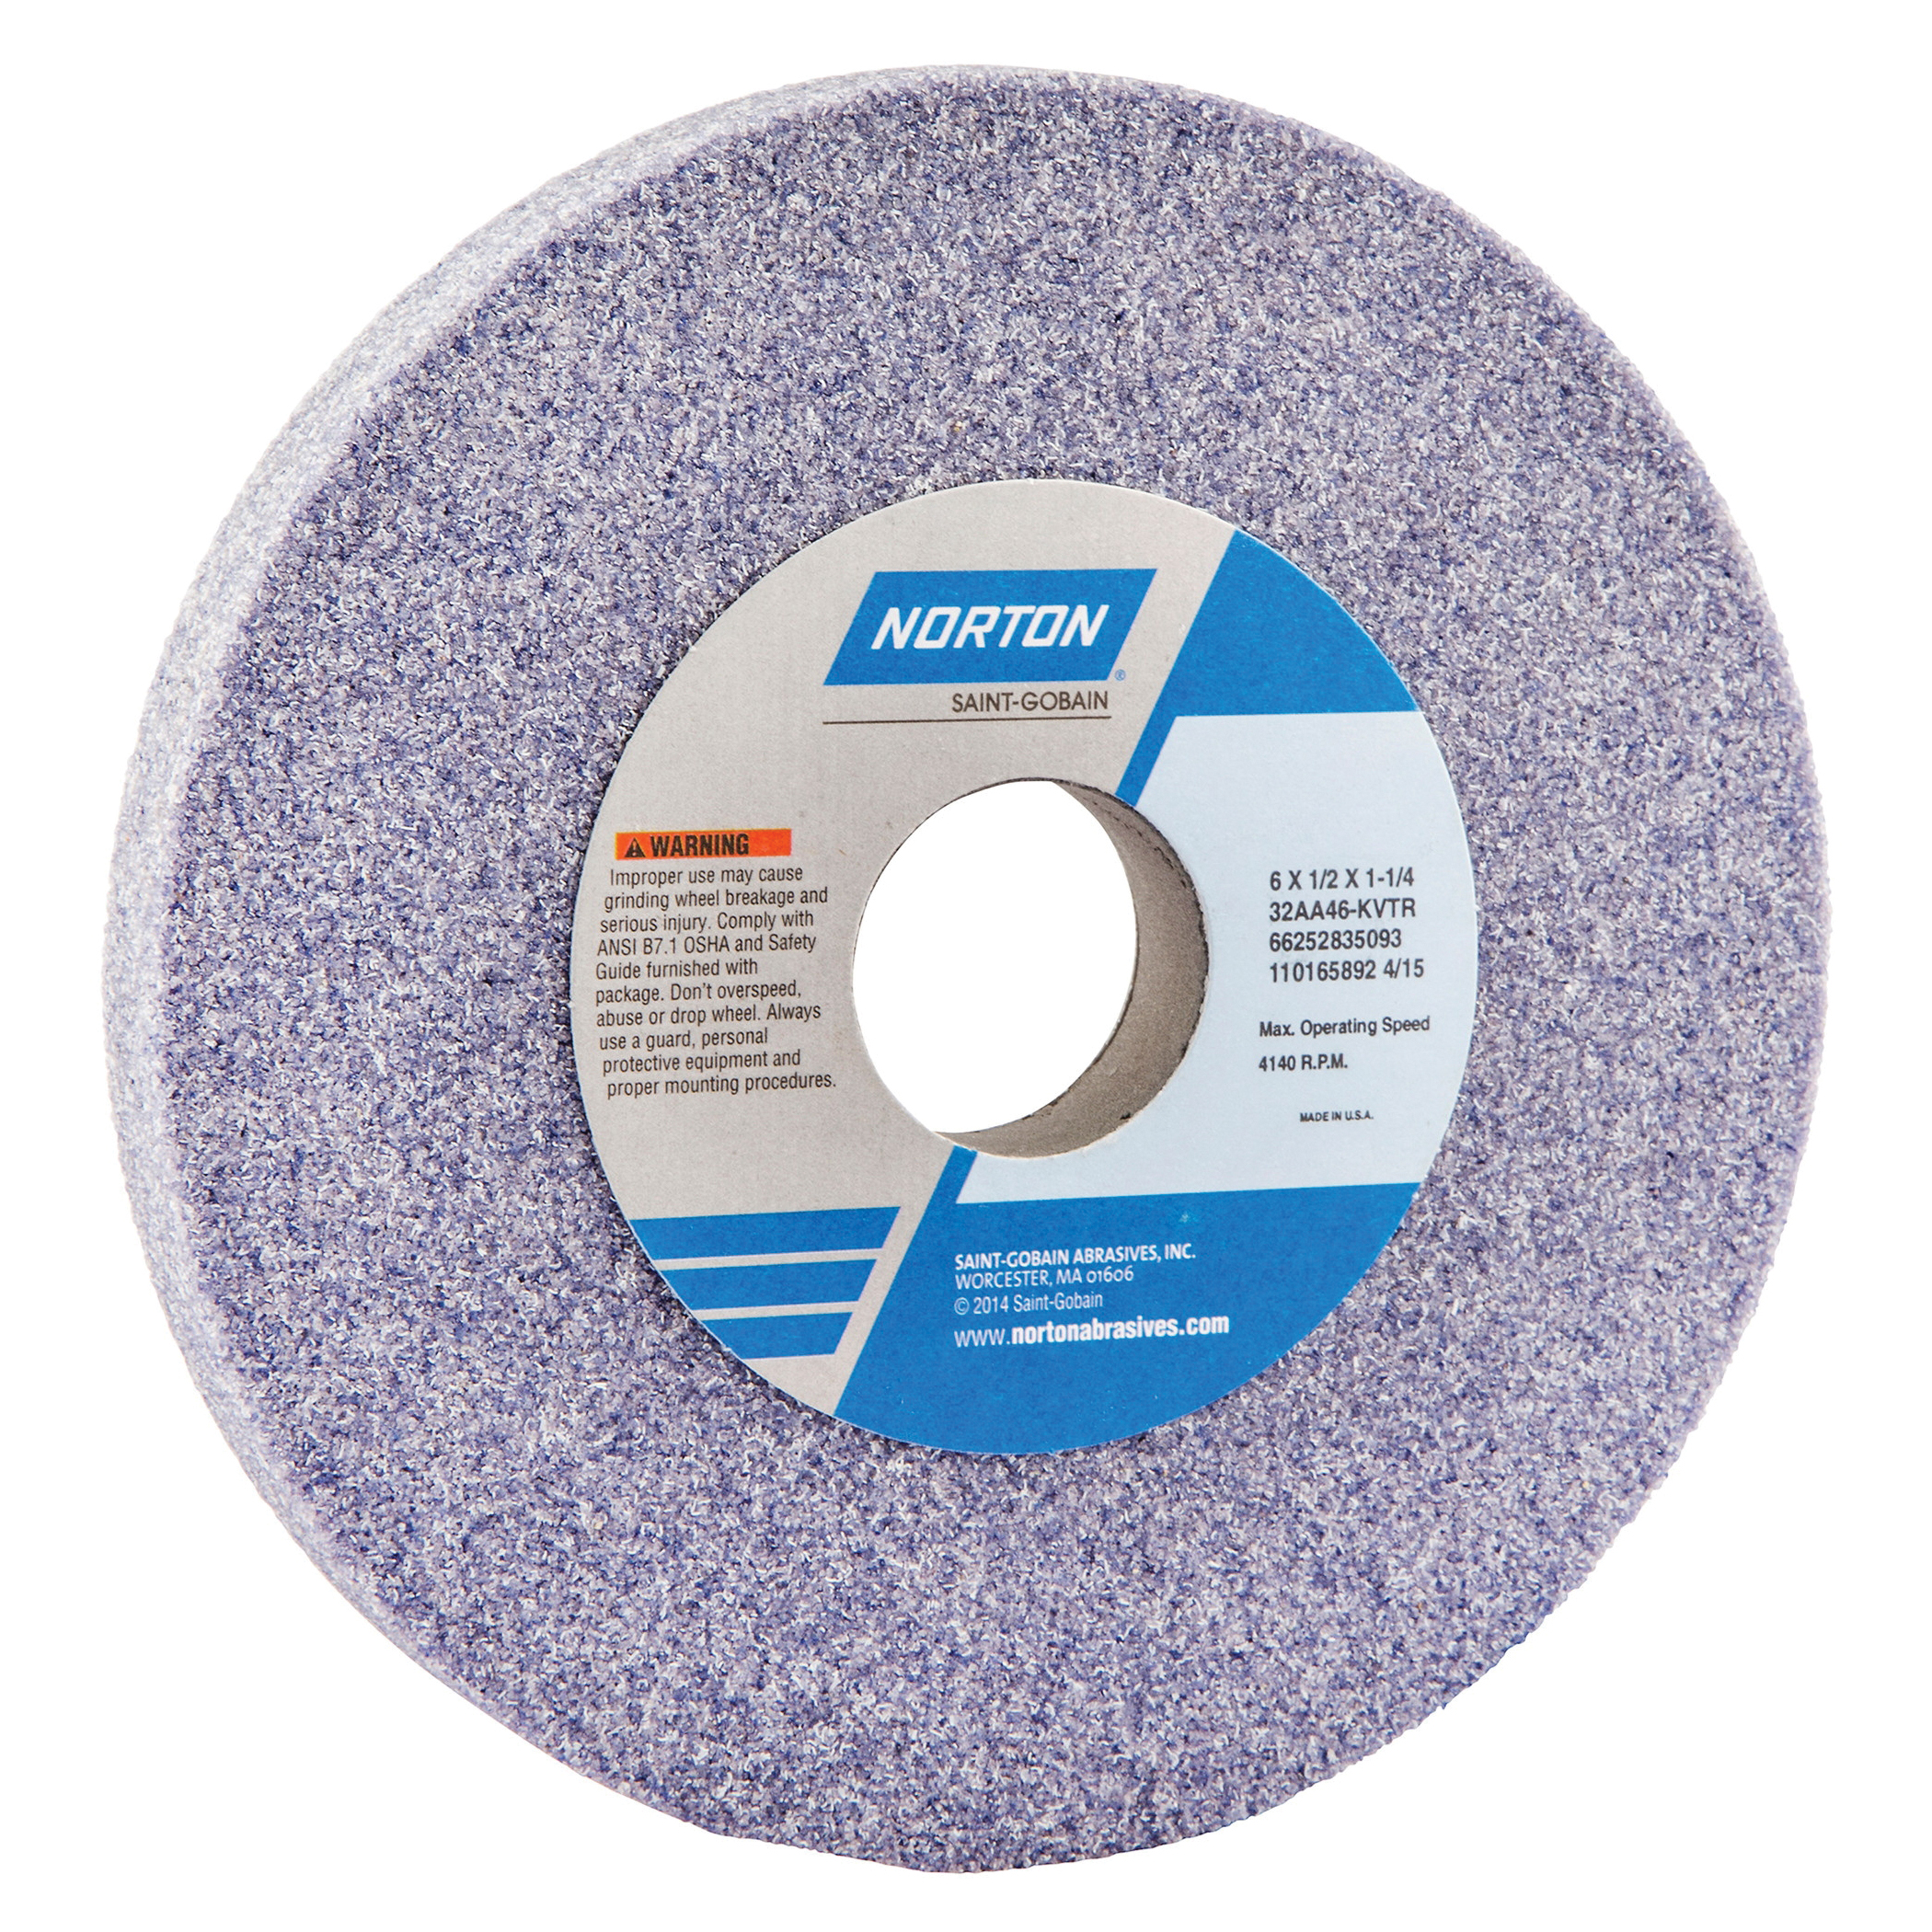 Norton® 66253363915 32A Straight Toolroom Wheel, 14 in Dia x 1 in THK, 5 in Center Hole, 46 Grit, Aluminum Oxide Abrasive